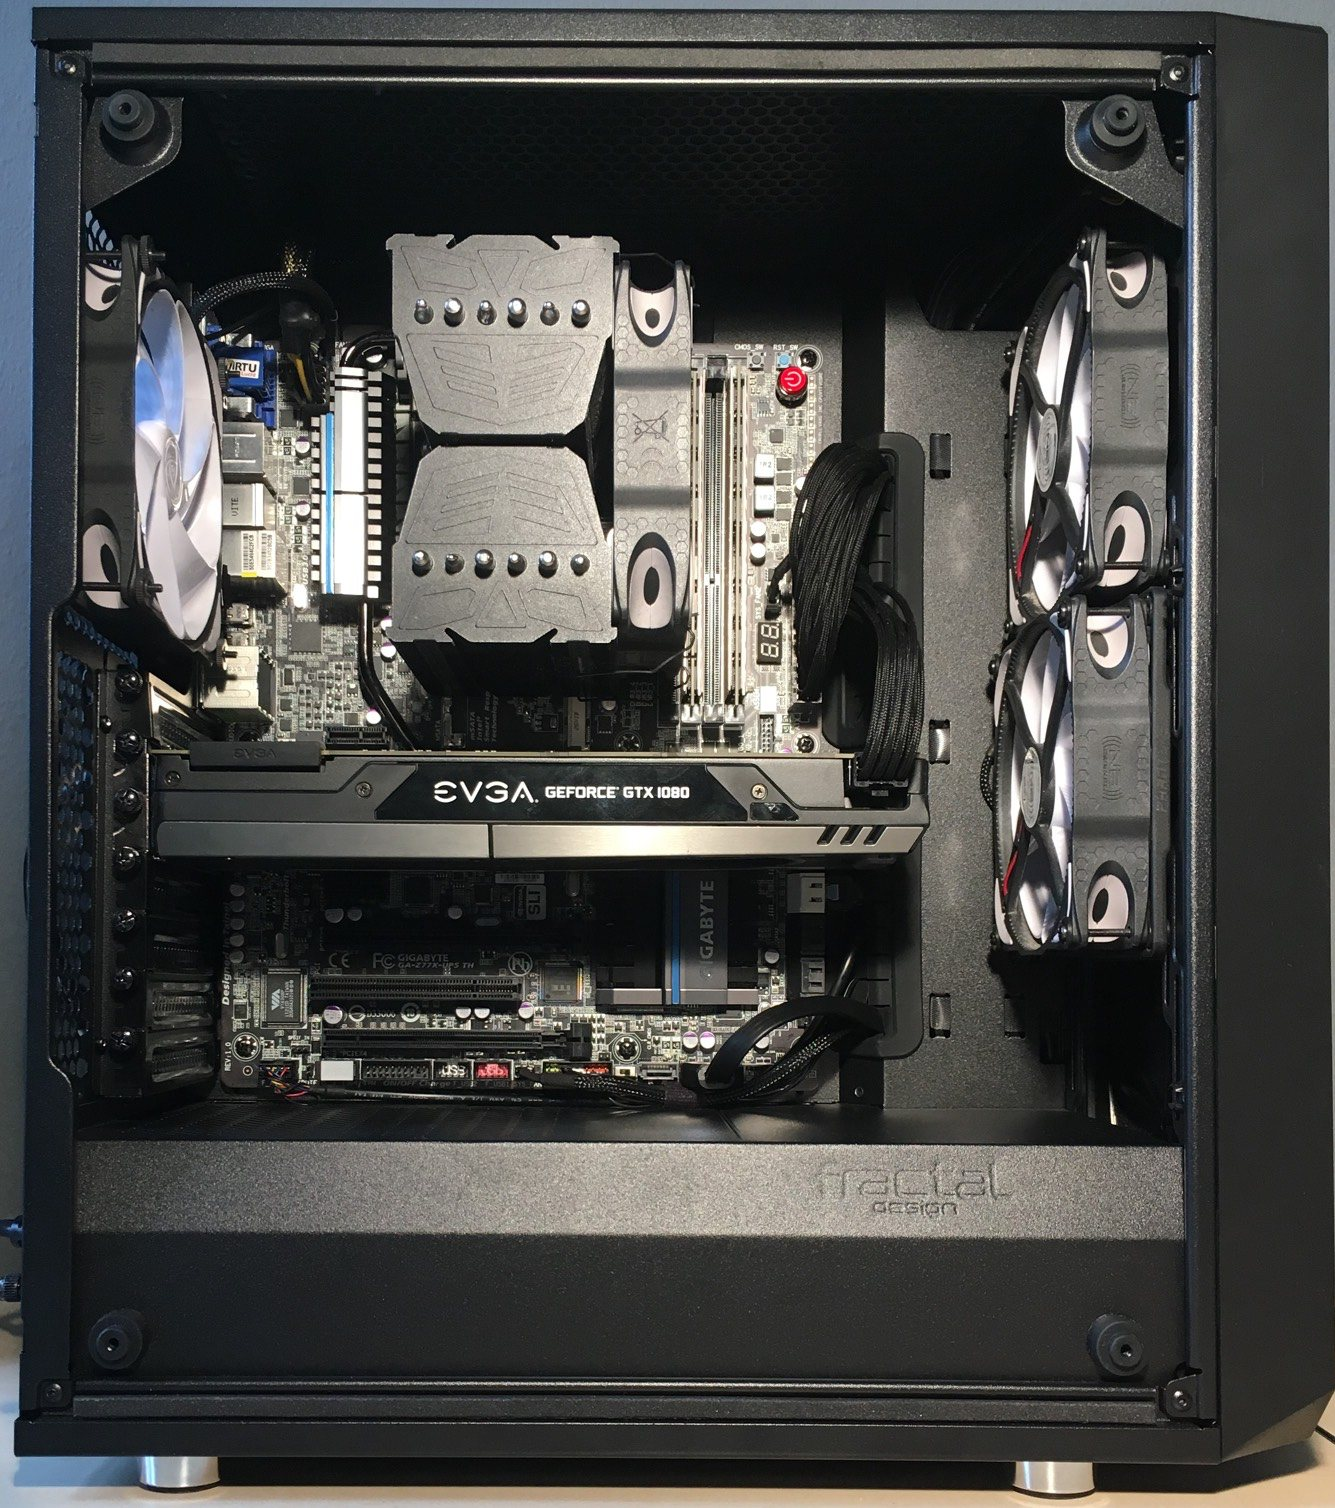 Mulle kybernetiK: Building another Hackintosh